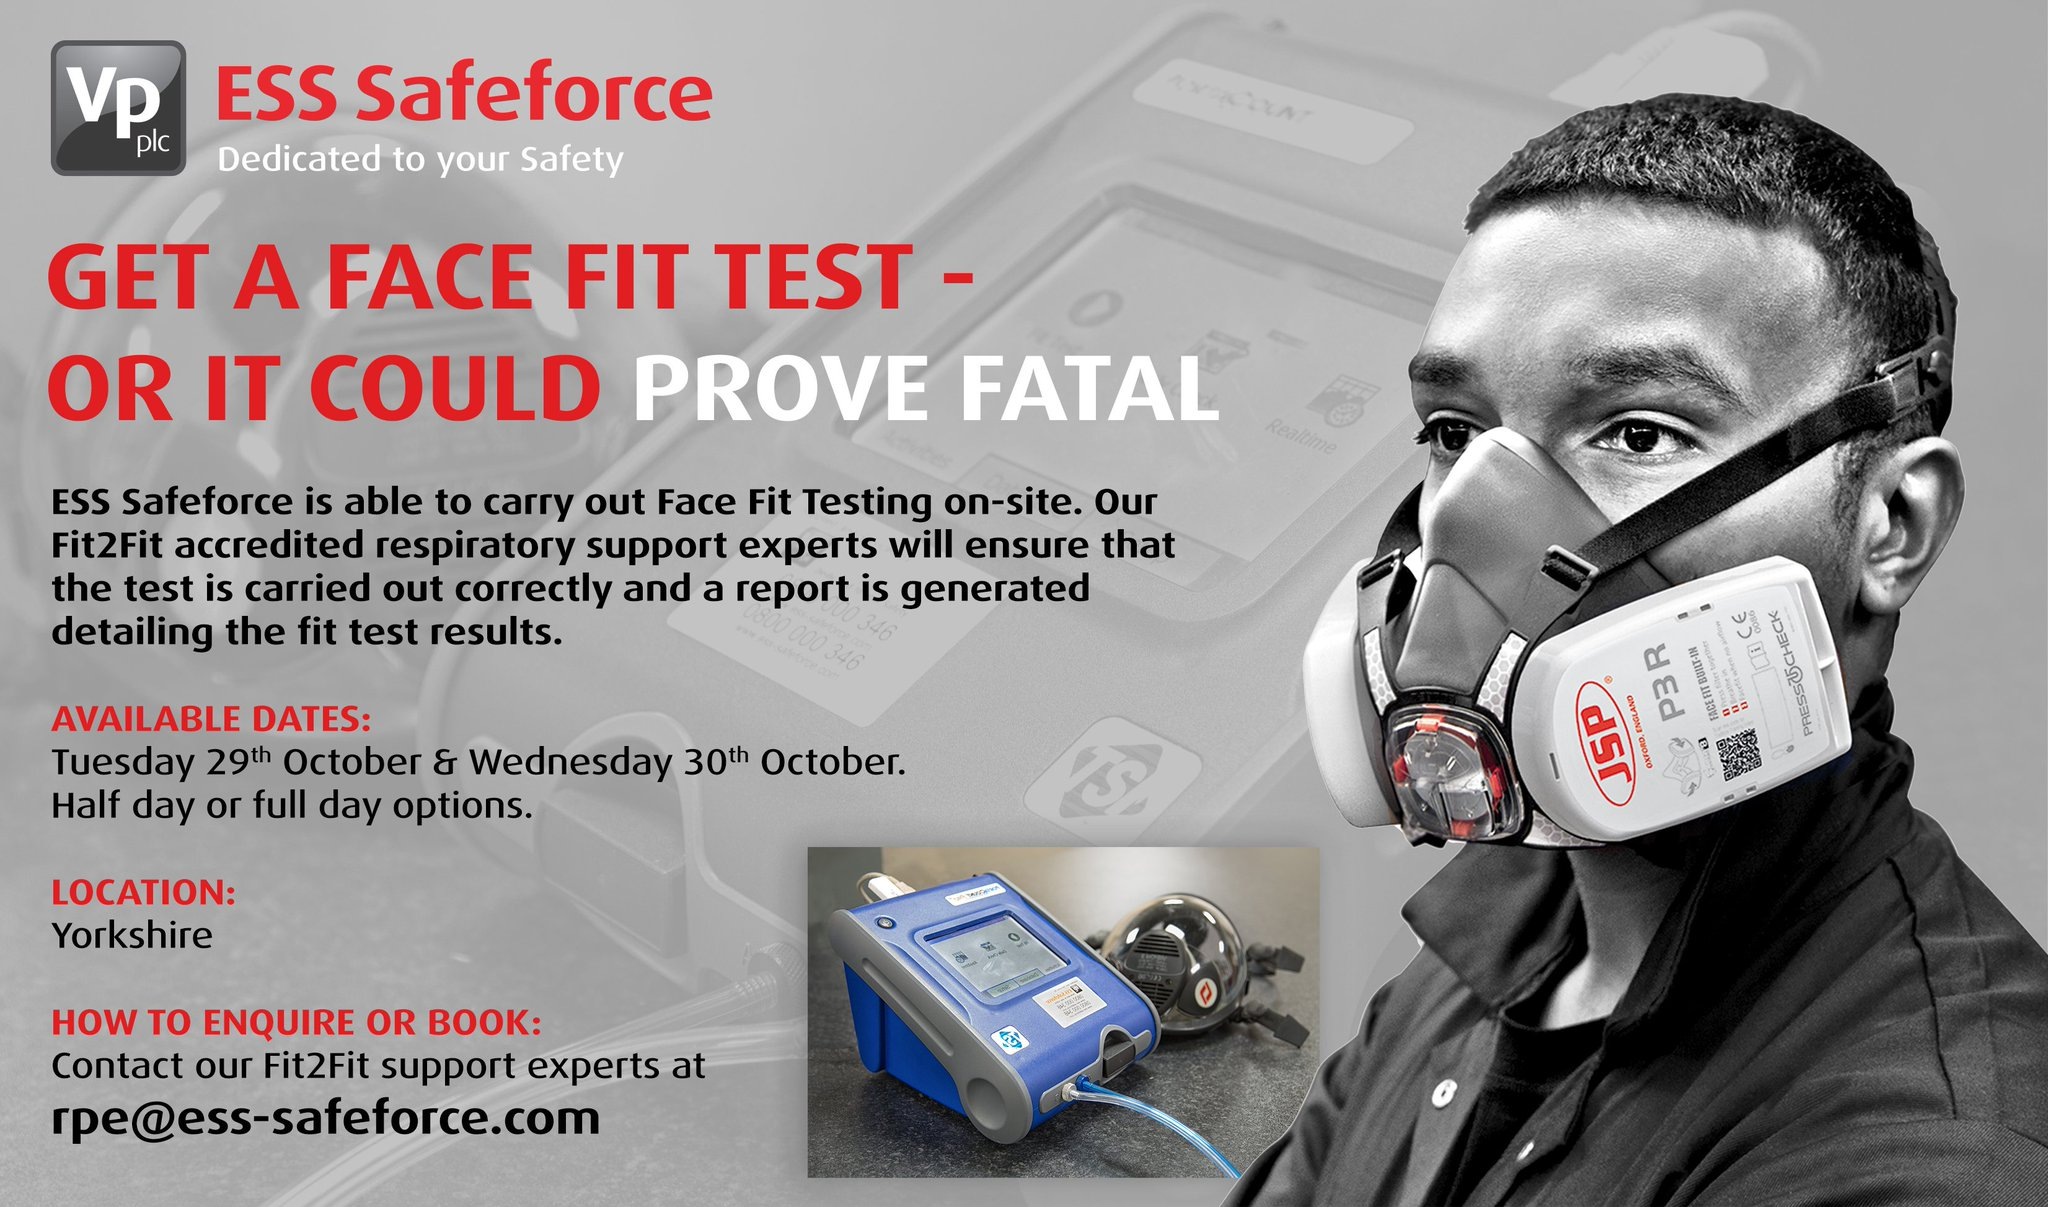 """ESS Safeforce on Twitter: """"Book a Face Fit Test today or it could prove  fatal! If you're based in #Yorkshire and require a Face Fit Test on Tuesday  29th October or Wednesday"""